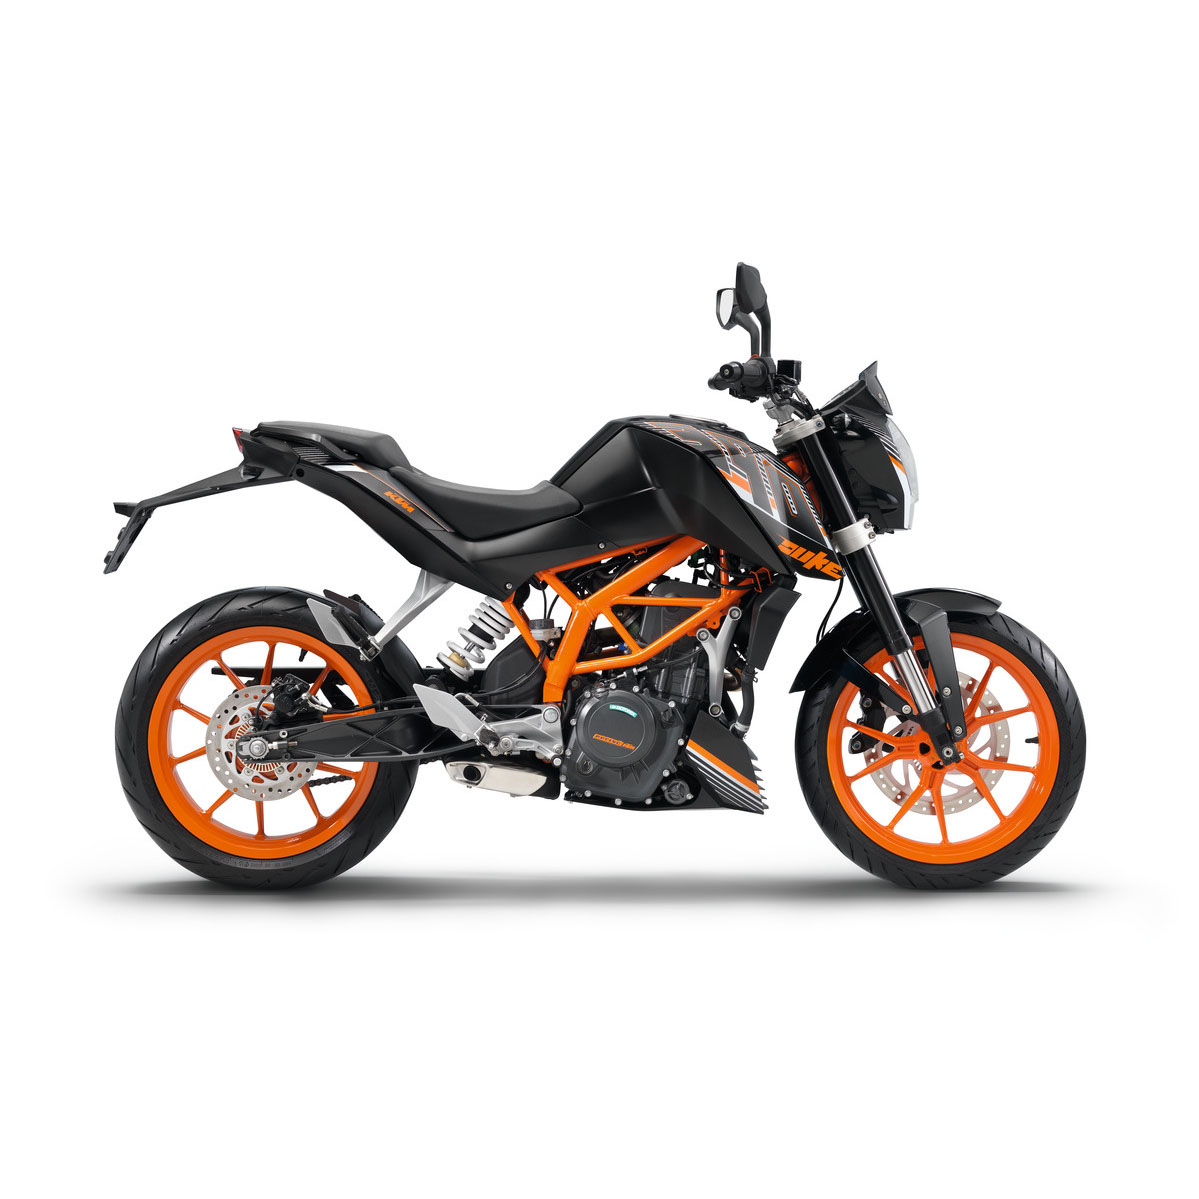 ktm duke 125 200 390 team berreiter ktm tuning. Black Bedroom Furniture Sets. Home Design Ideas